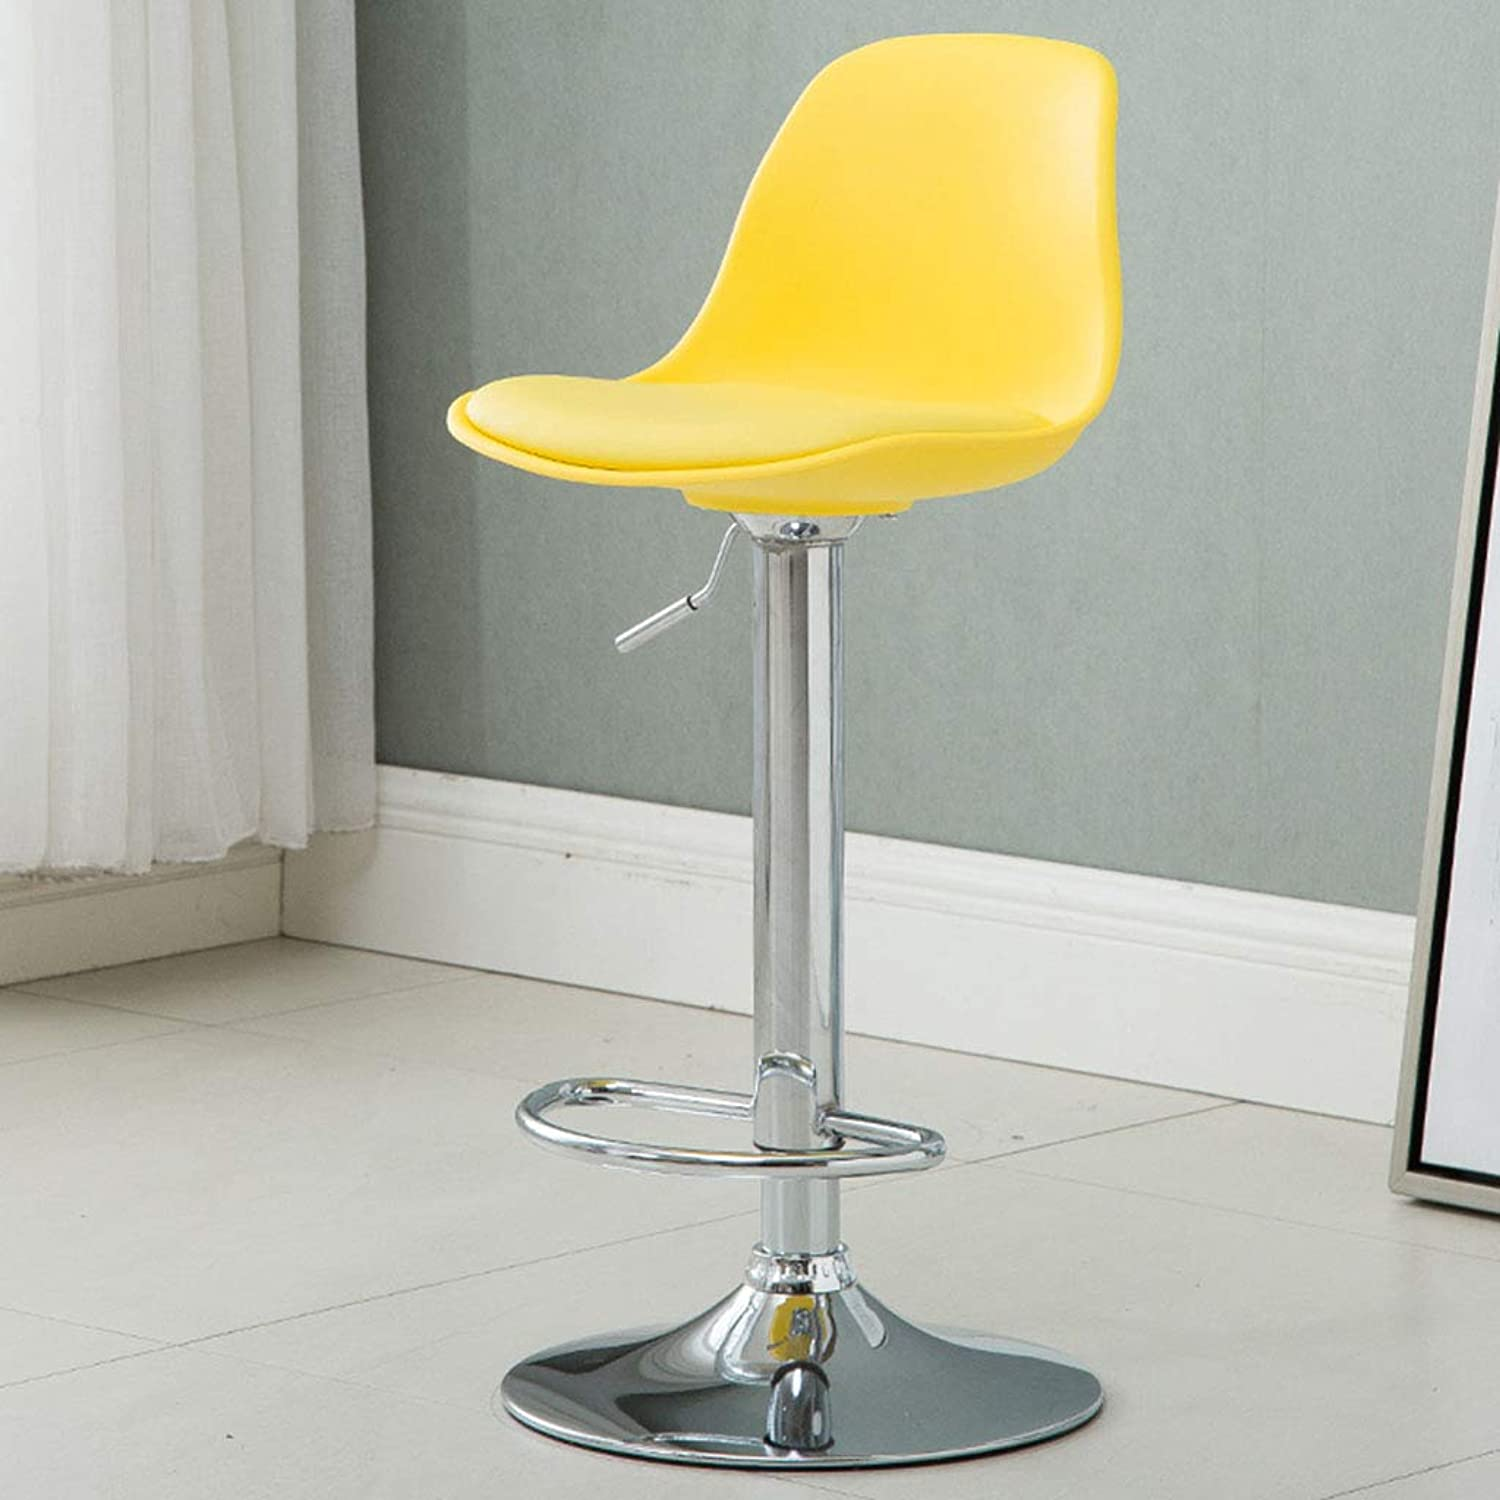 Stools Bar Chair Yellow Modern Breakfast Kitchen Chair Stool with Backrest Swivel Chair Adjustable 60CM-80CM (color    2)